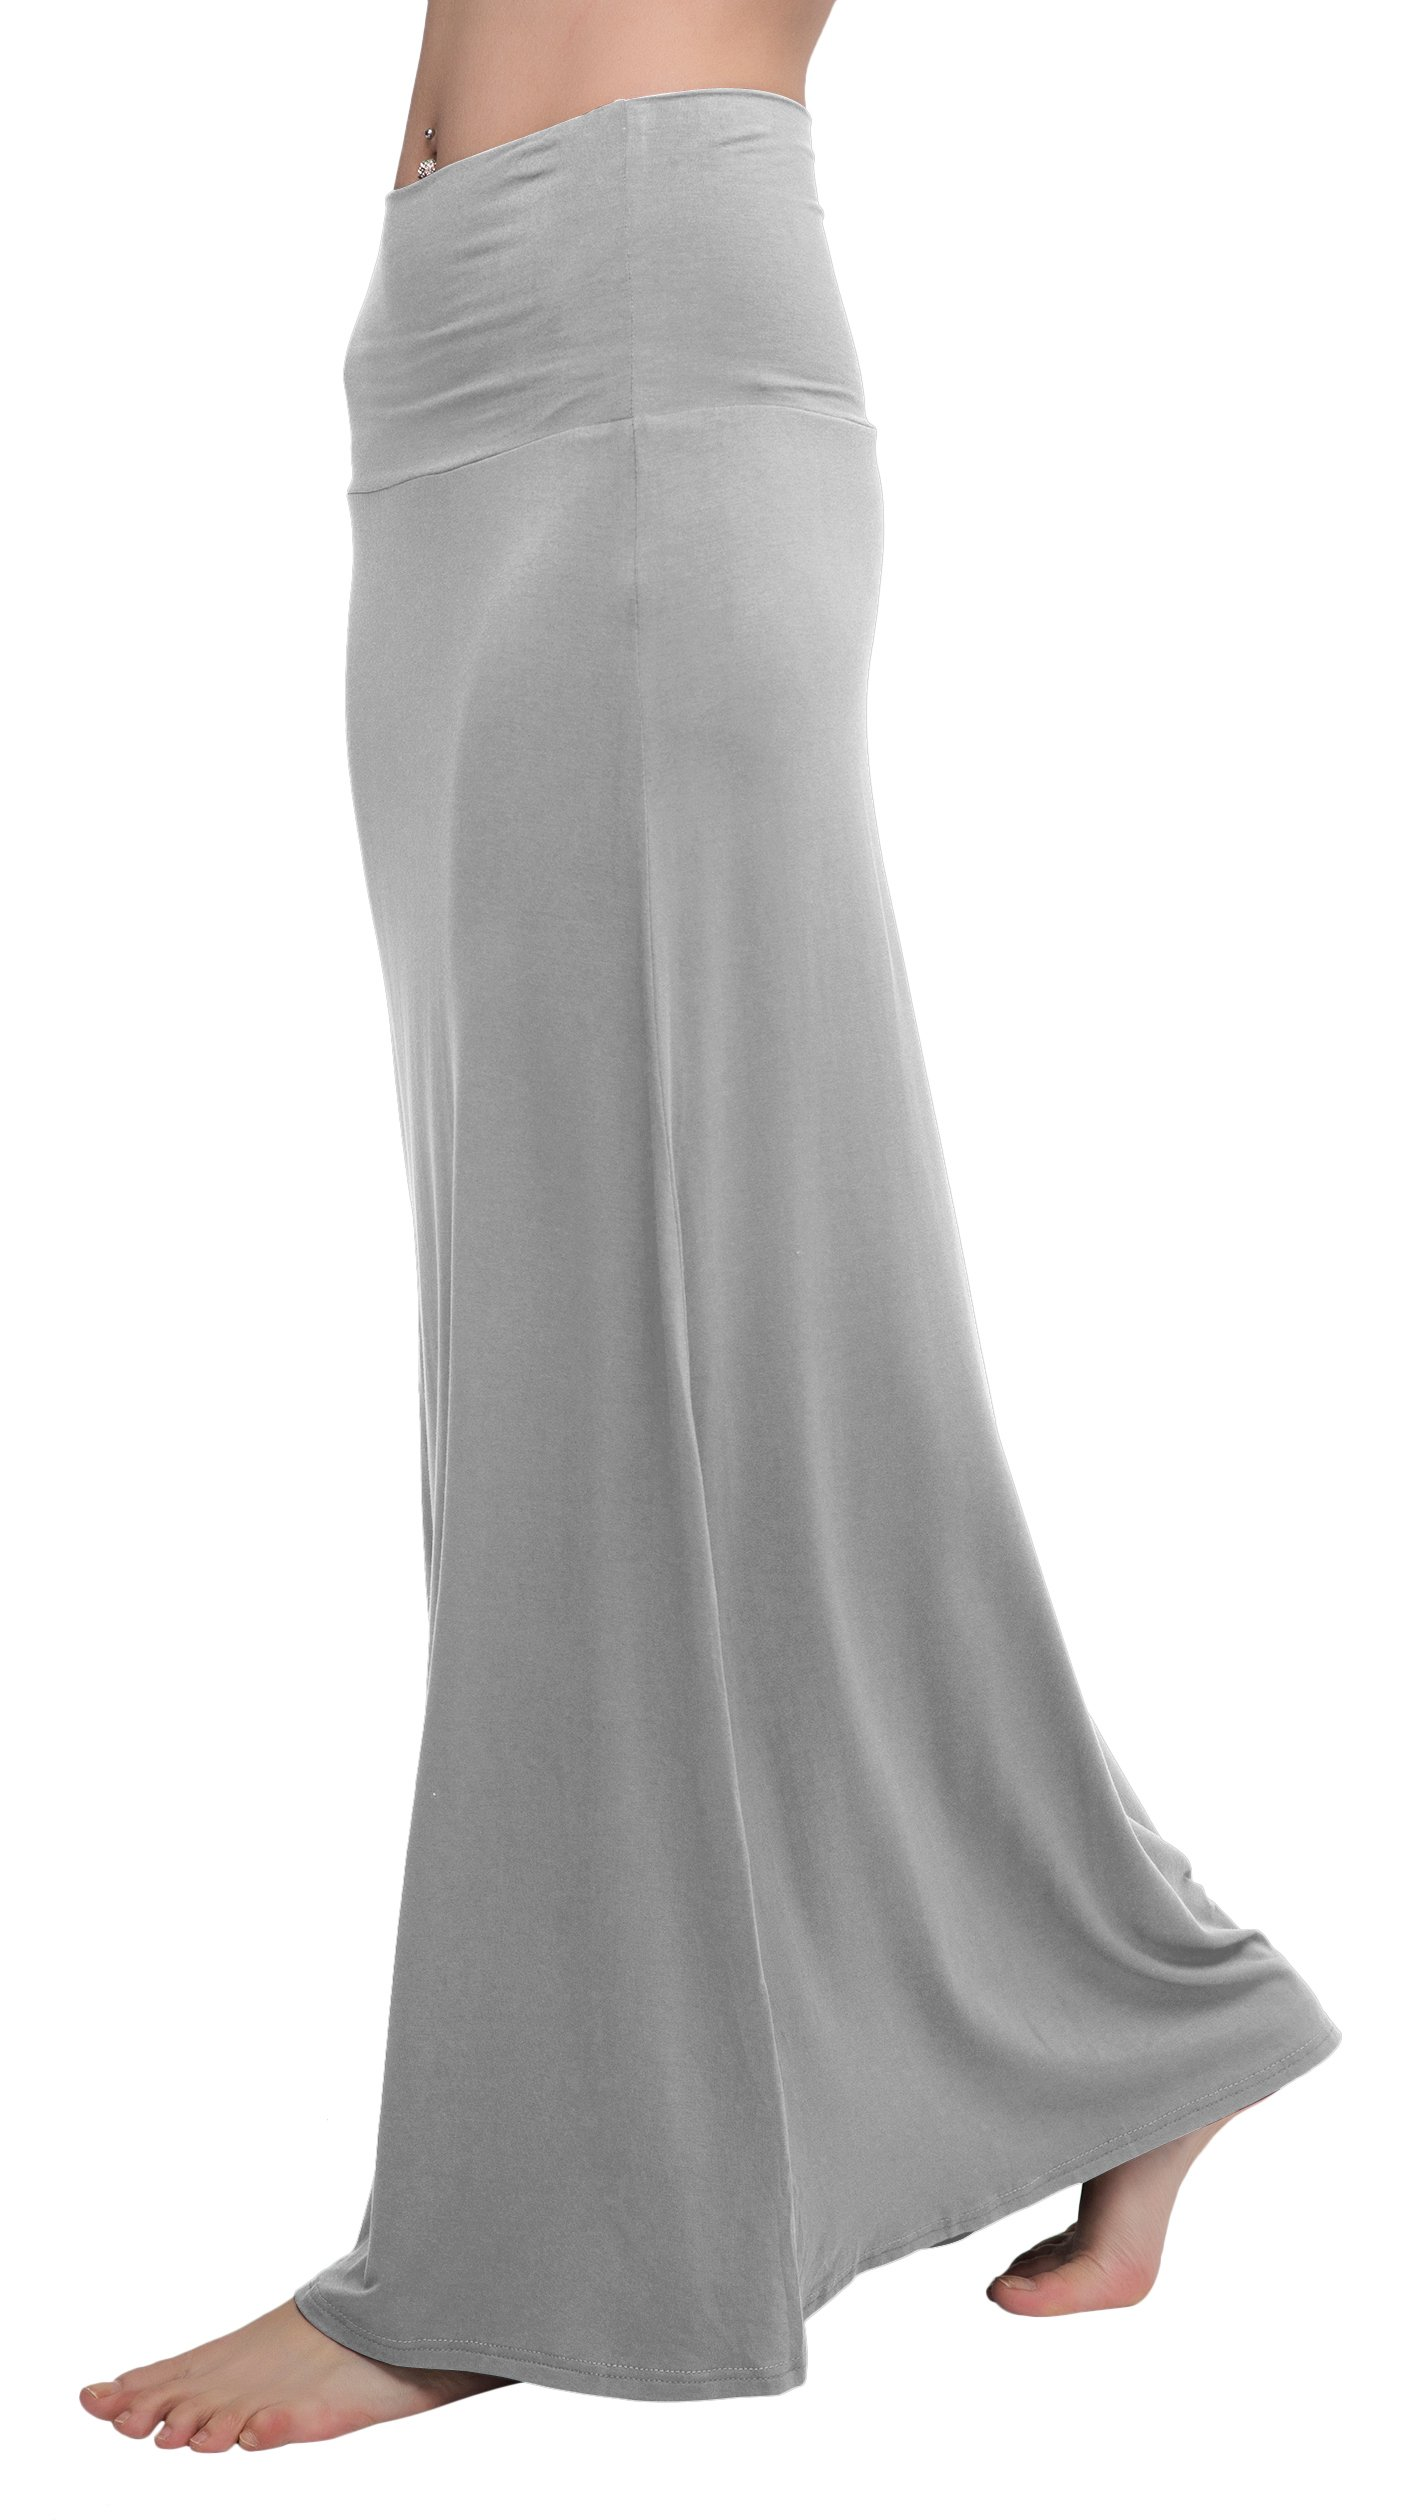 Urban CoCo Women's Stylish Spandex Comfy Fold-Over Flare Long Maxi Skirt (M, Light Gray)